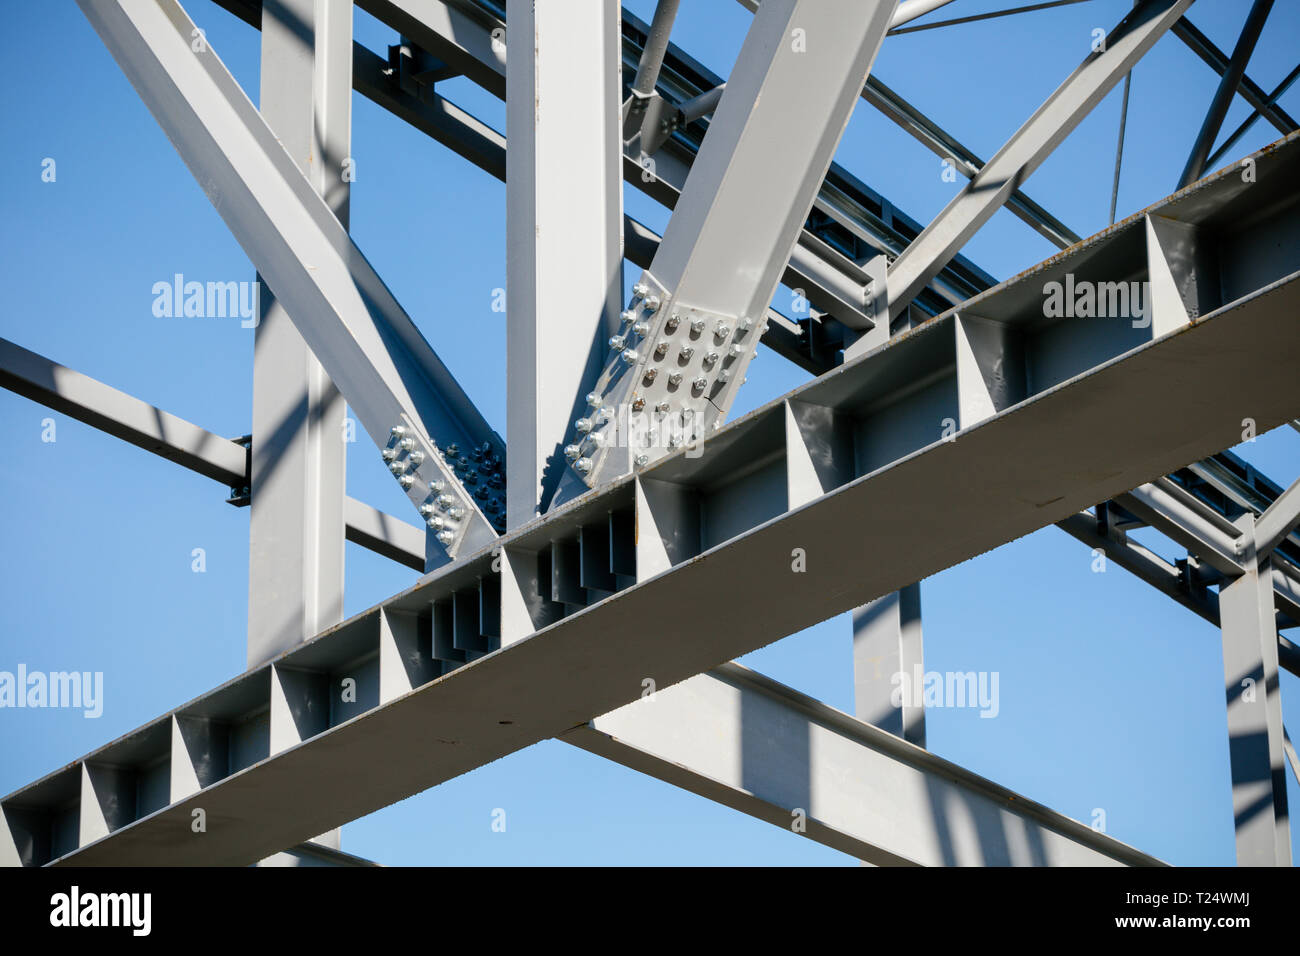 Steel frame of new building in construction - girder joint detail, set against bright blue sky - Stock Image